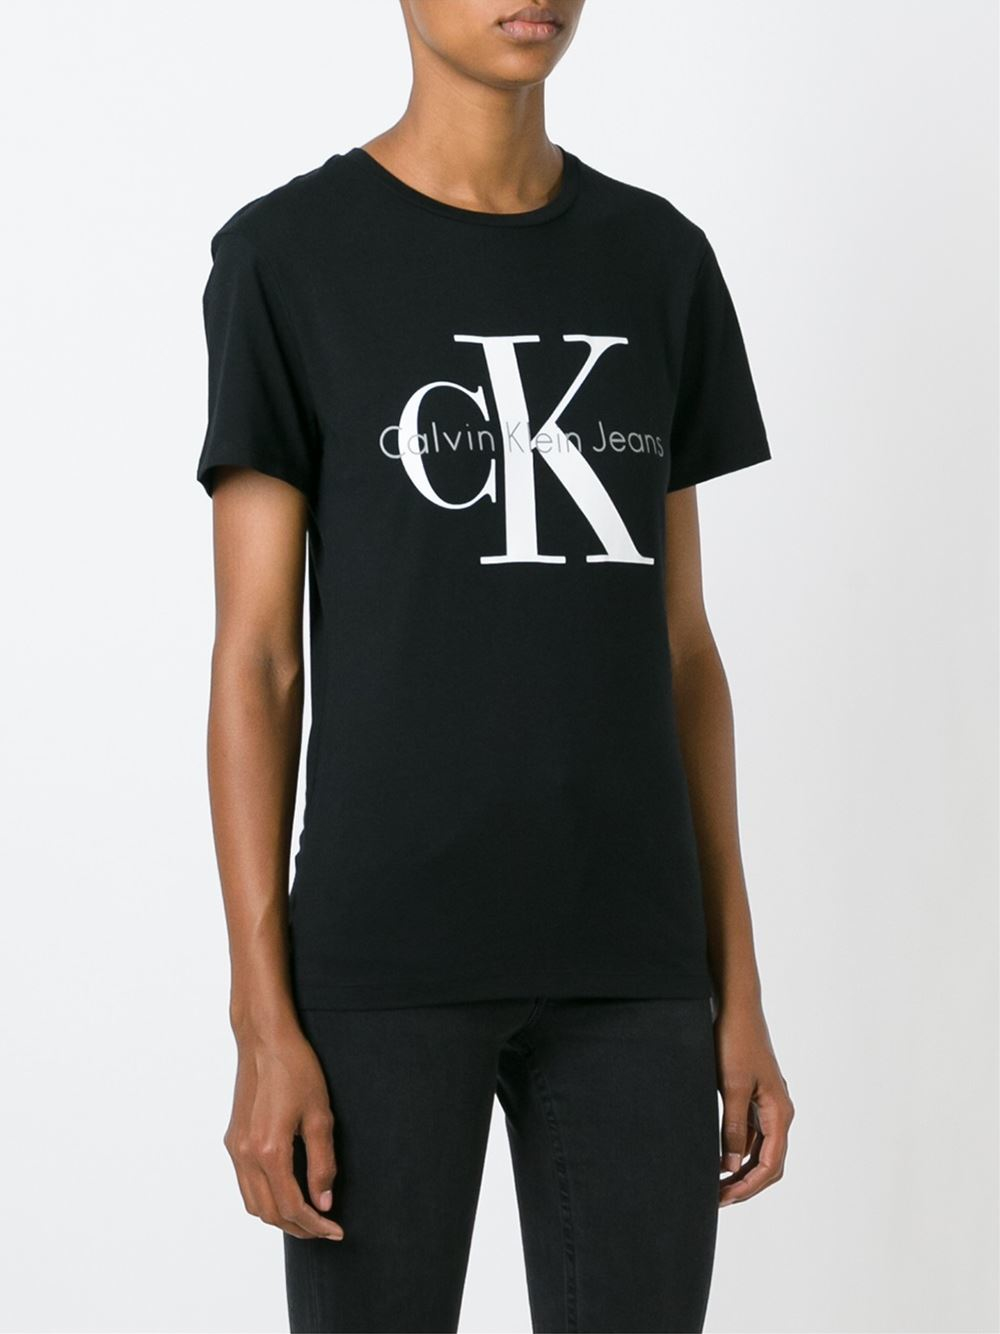 calvin klein jeans logo print t shirt in black for men lyst. Black Bedroom Furniture Sets. Home Design Ideas